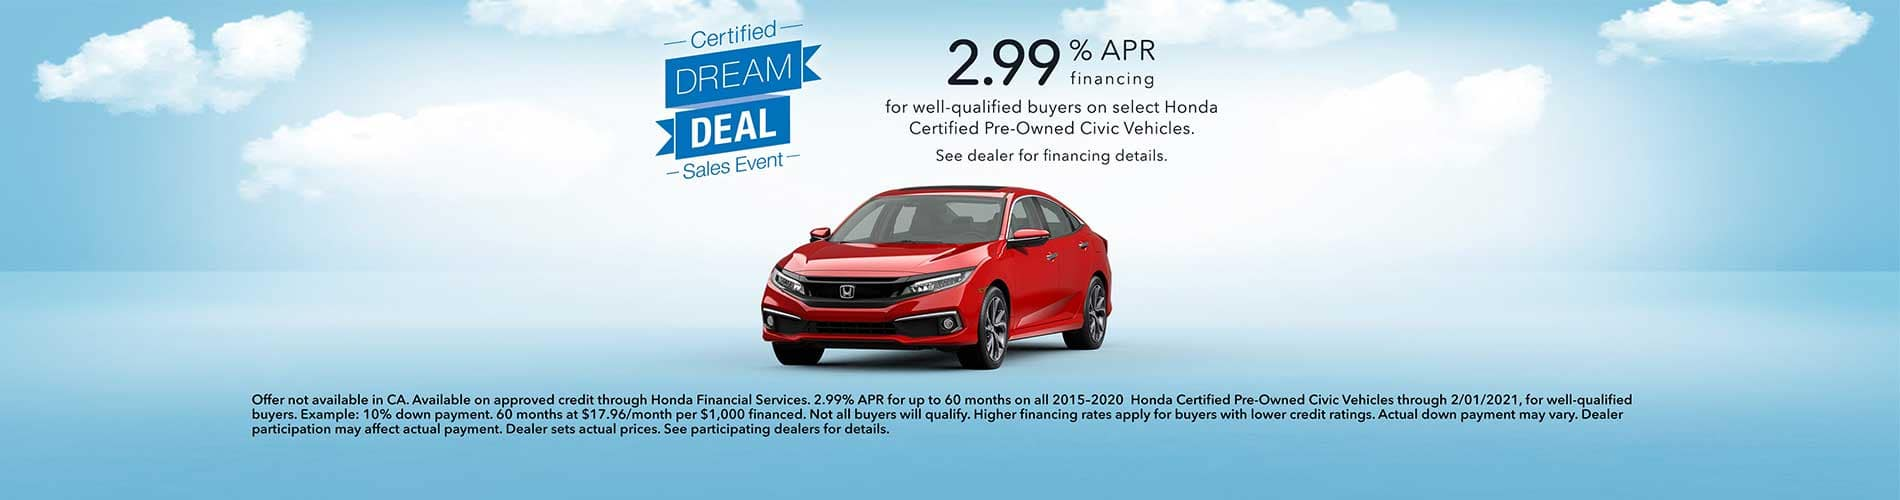 Honda Certified Dream Deal Sales Event 2.99% APR on Select Certified Pre-Owned Honda Civic Vehicles